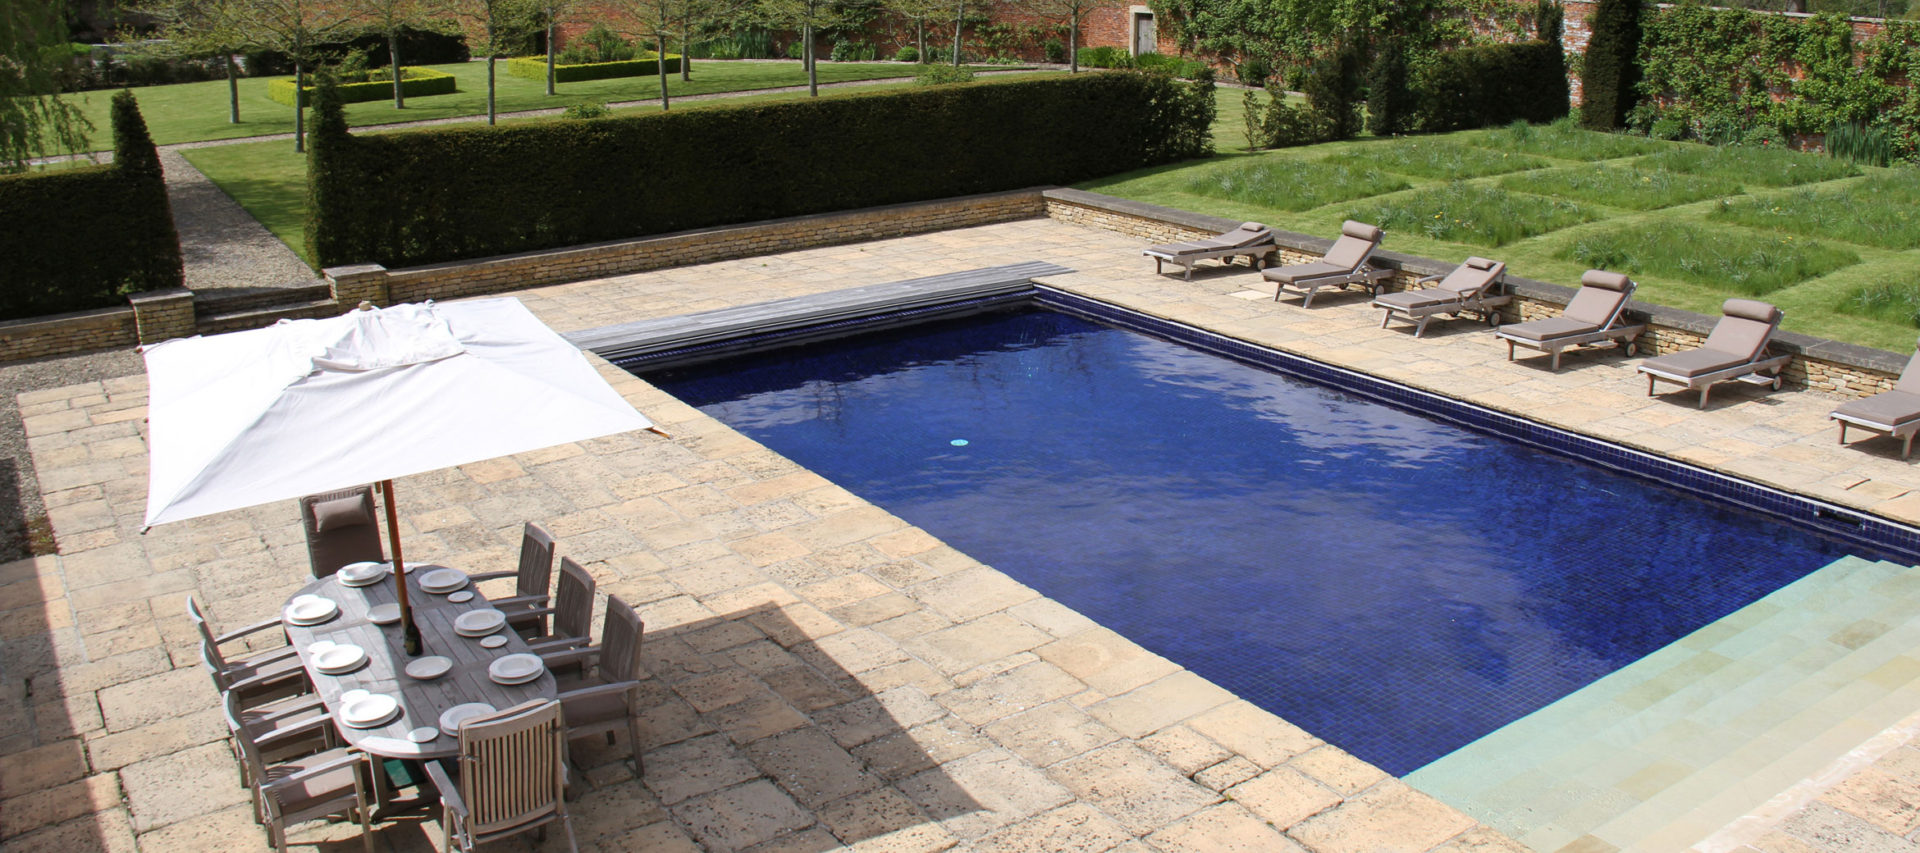 Langley park luxury cotswold rentals luxury cotswold rentals for Chippenham outdoor swimming pool